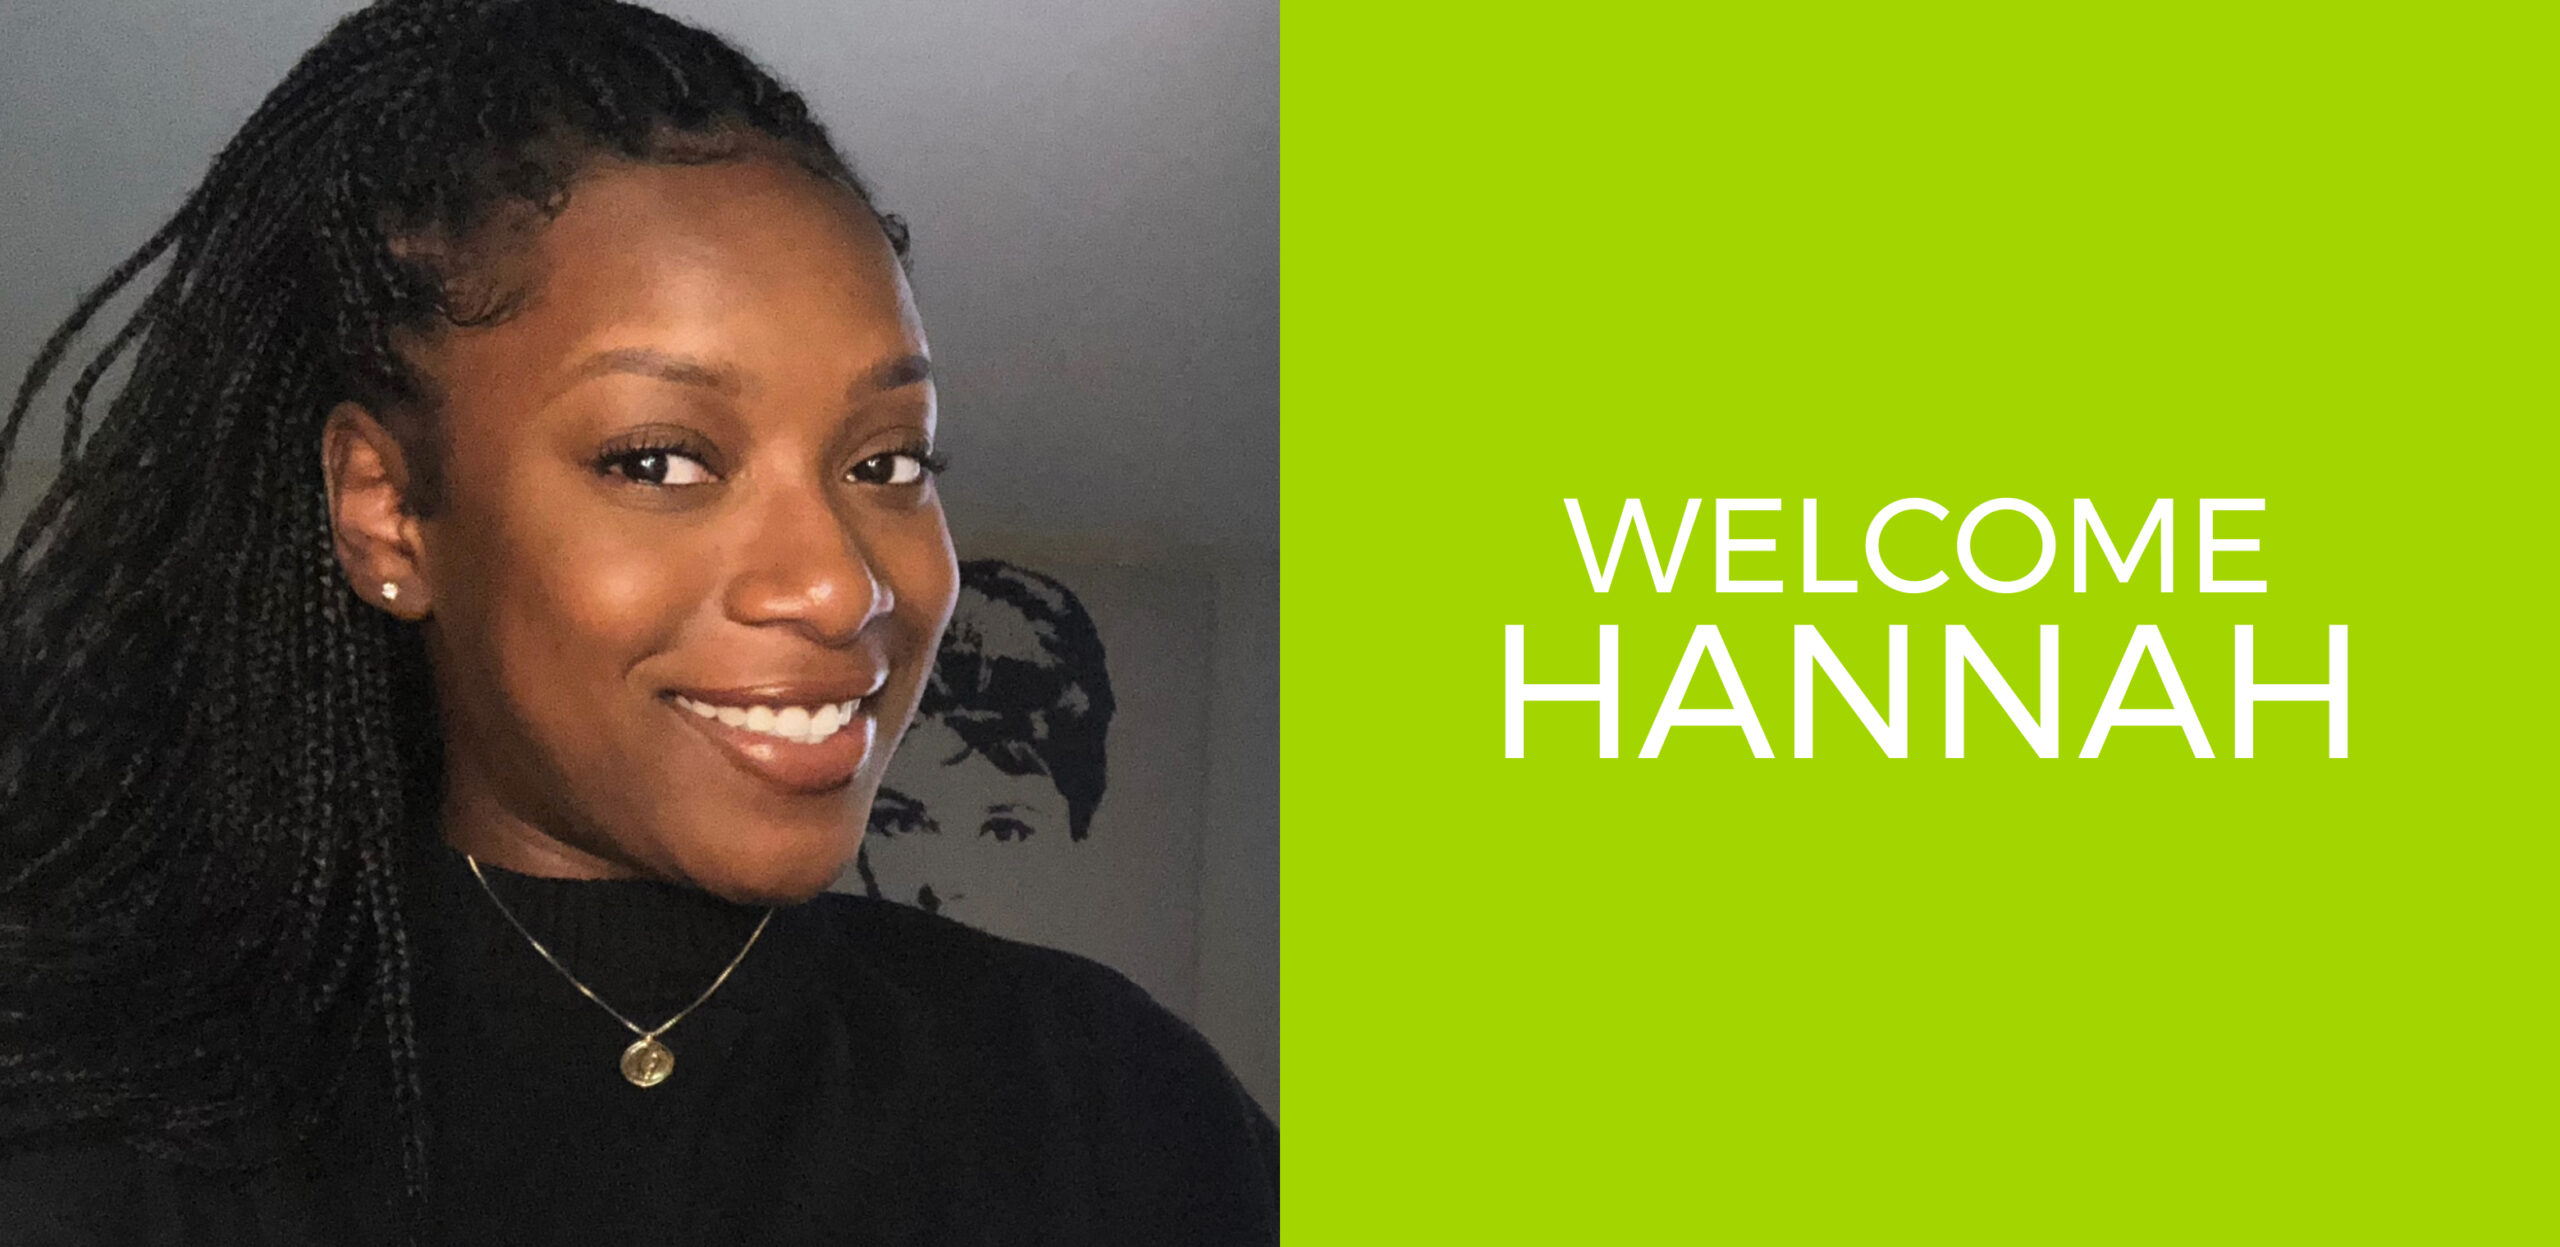 Welcome Hannah Simon, our newest Associate Account Executive